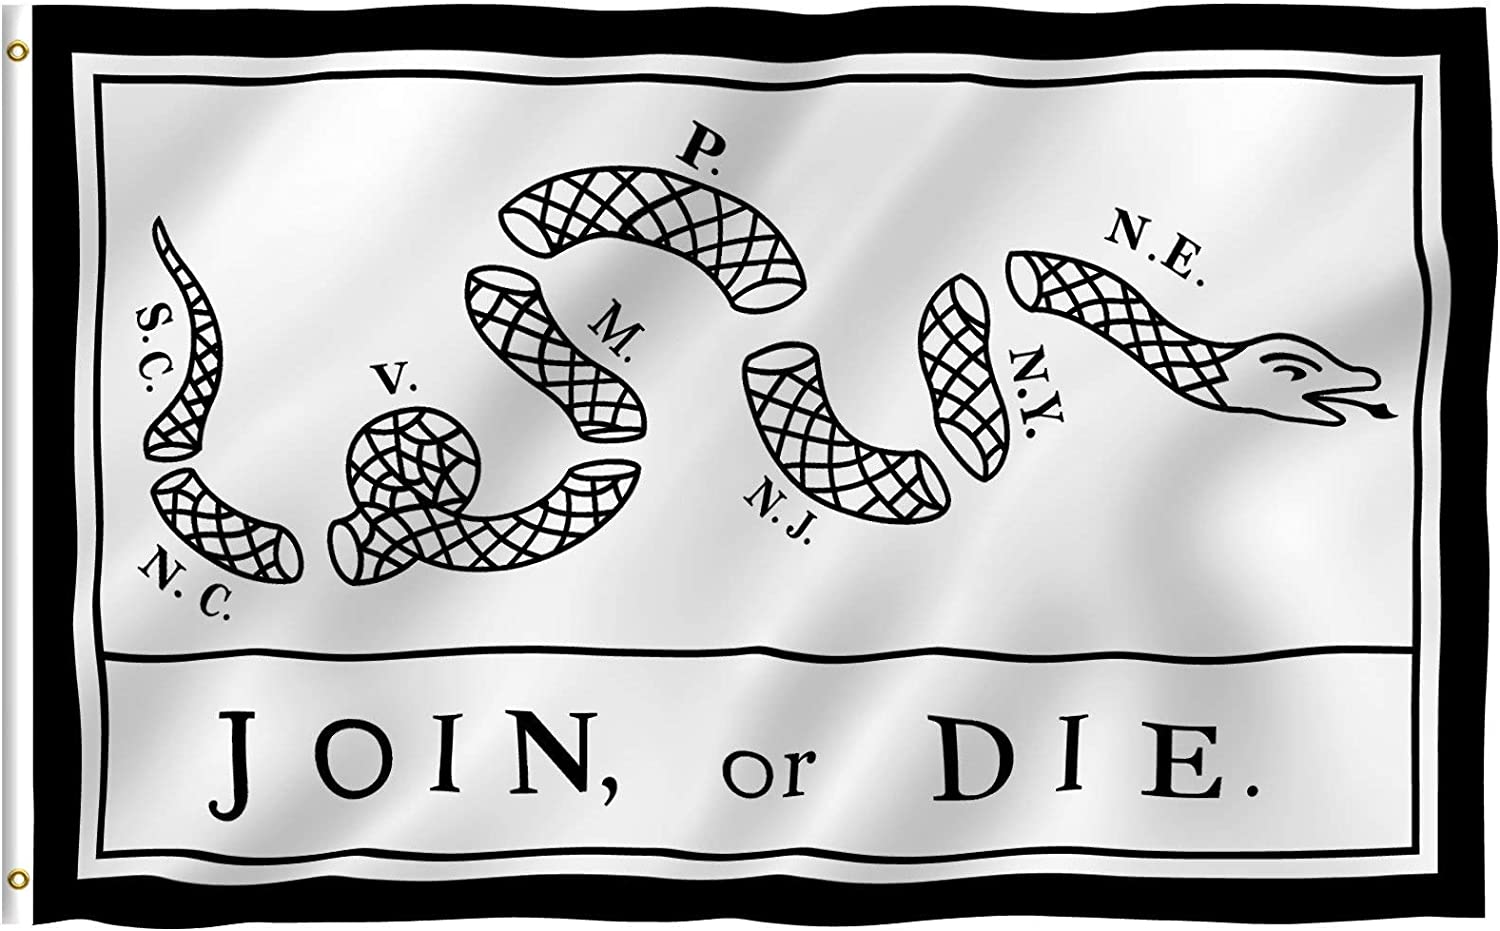 Anley Fly Breeze 3x5 Foot Join Or Die Flag - Vivid Color and Fade Proof - Canvas Header and Double Stitched - Rattlesnake Flags Polyester with Brass Grommets 3 X 5 Ft